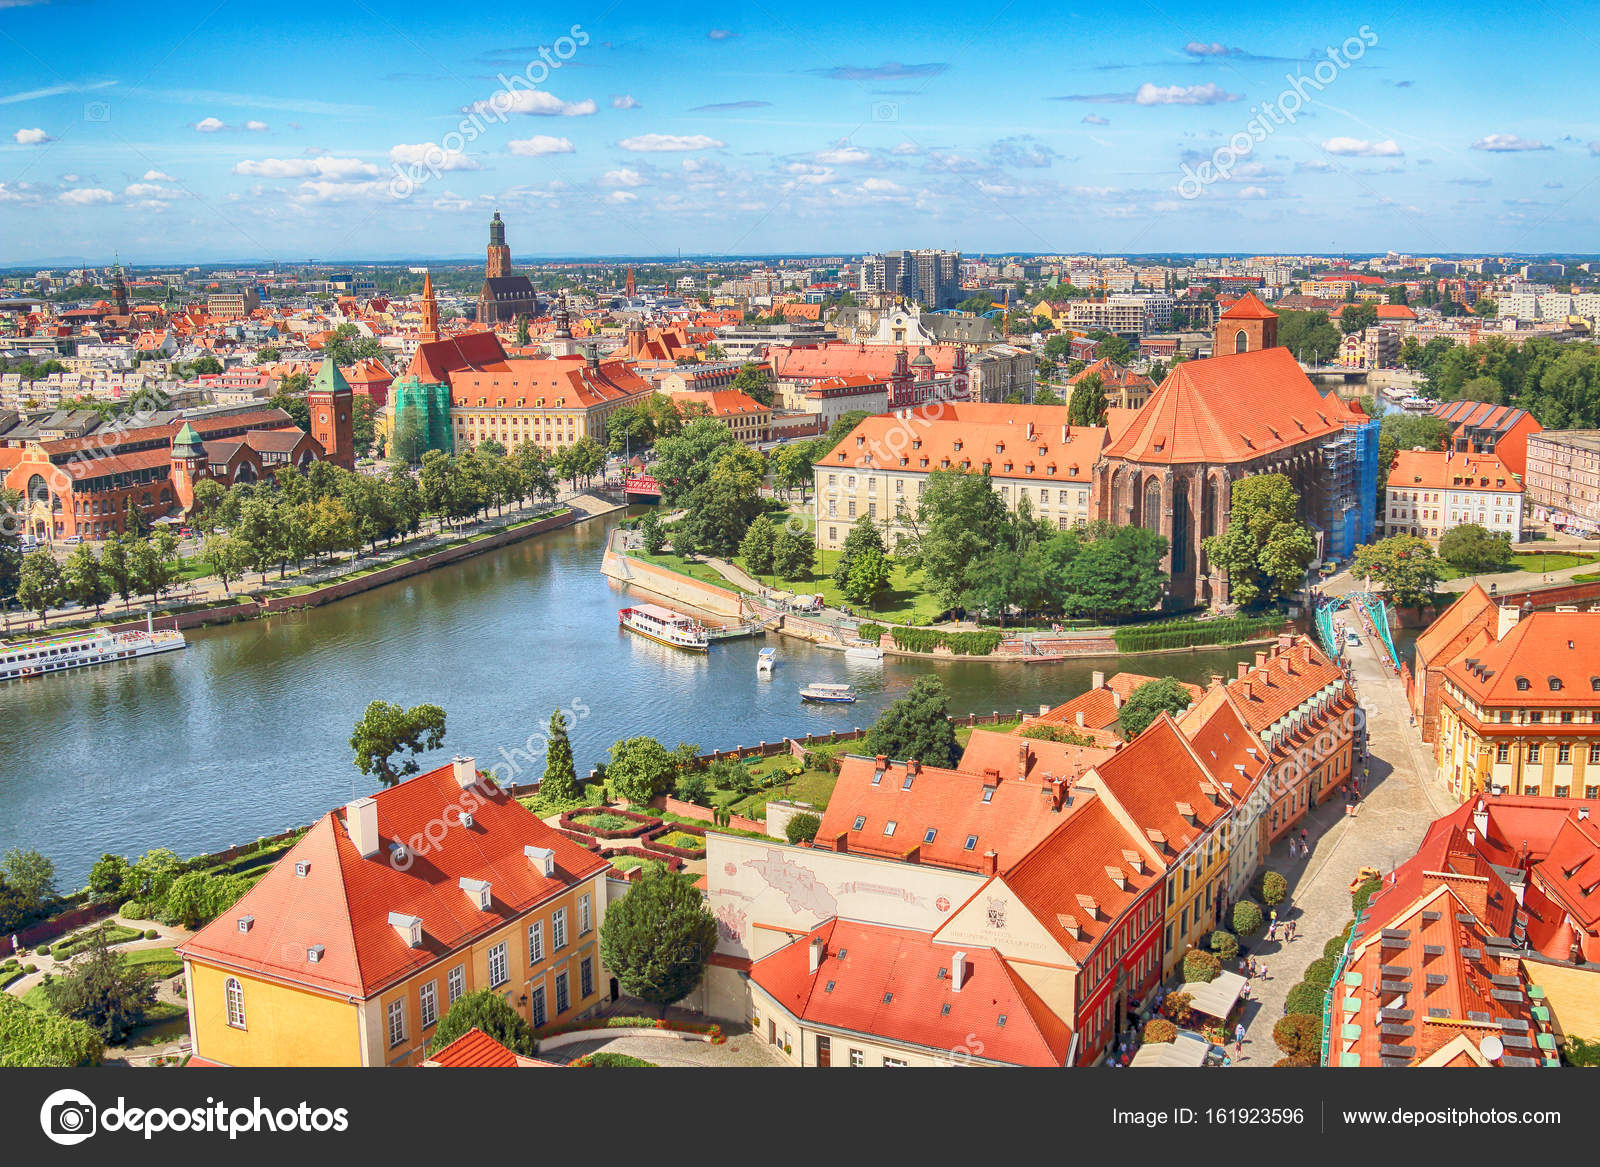 WROCLAW, POLAND - JULY 29, 2017: Aerial view of Wroclaw  Old